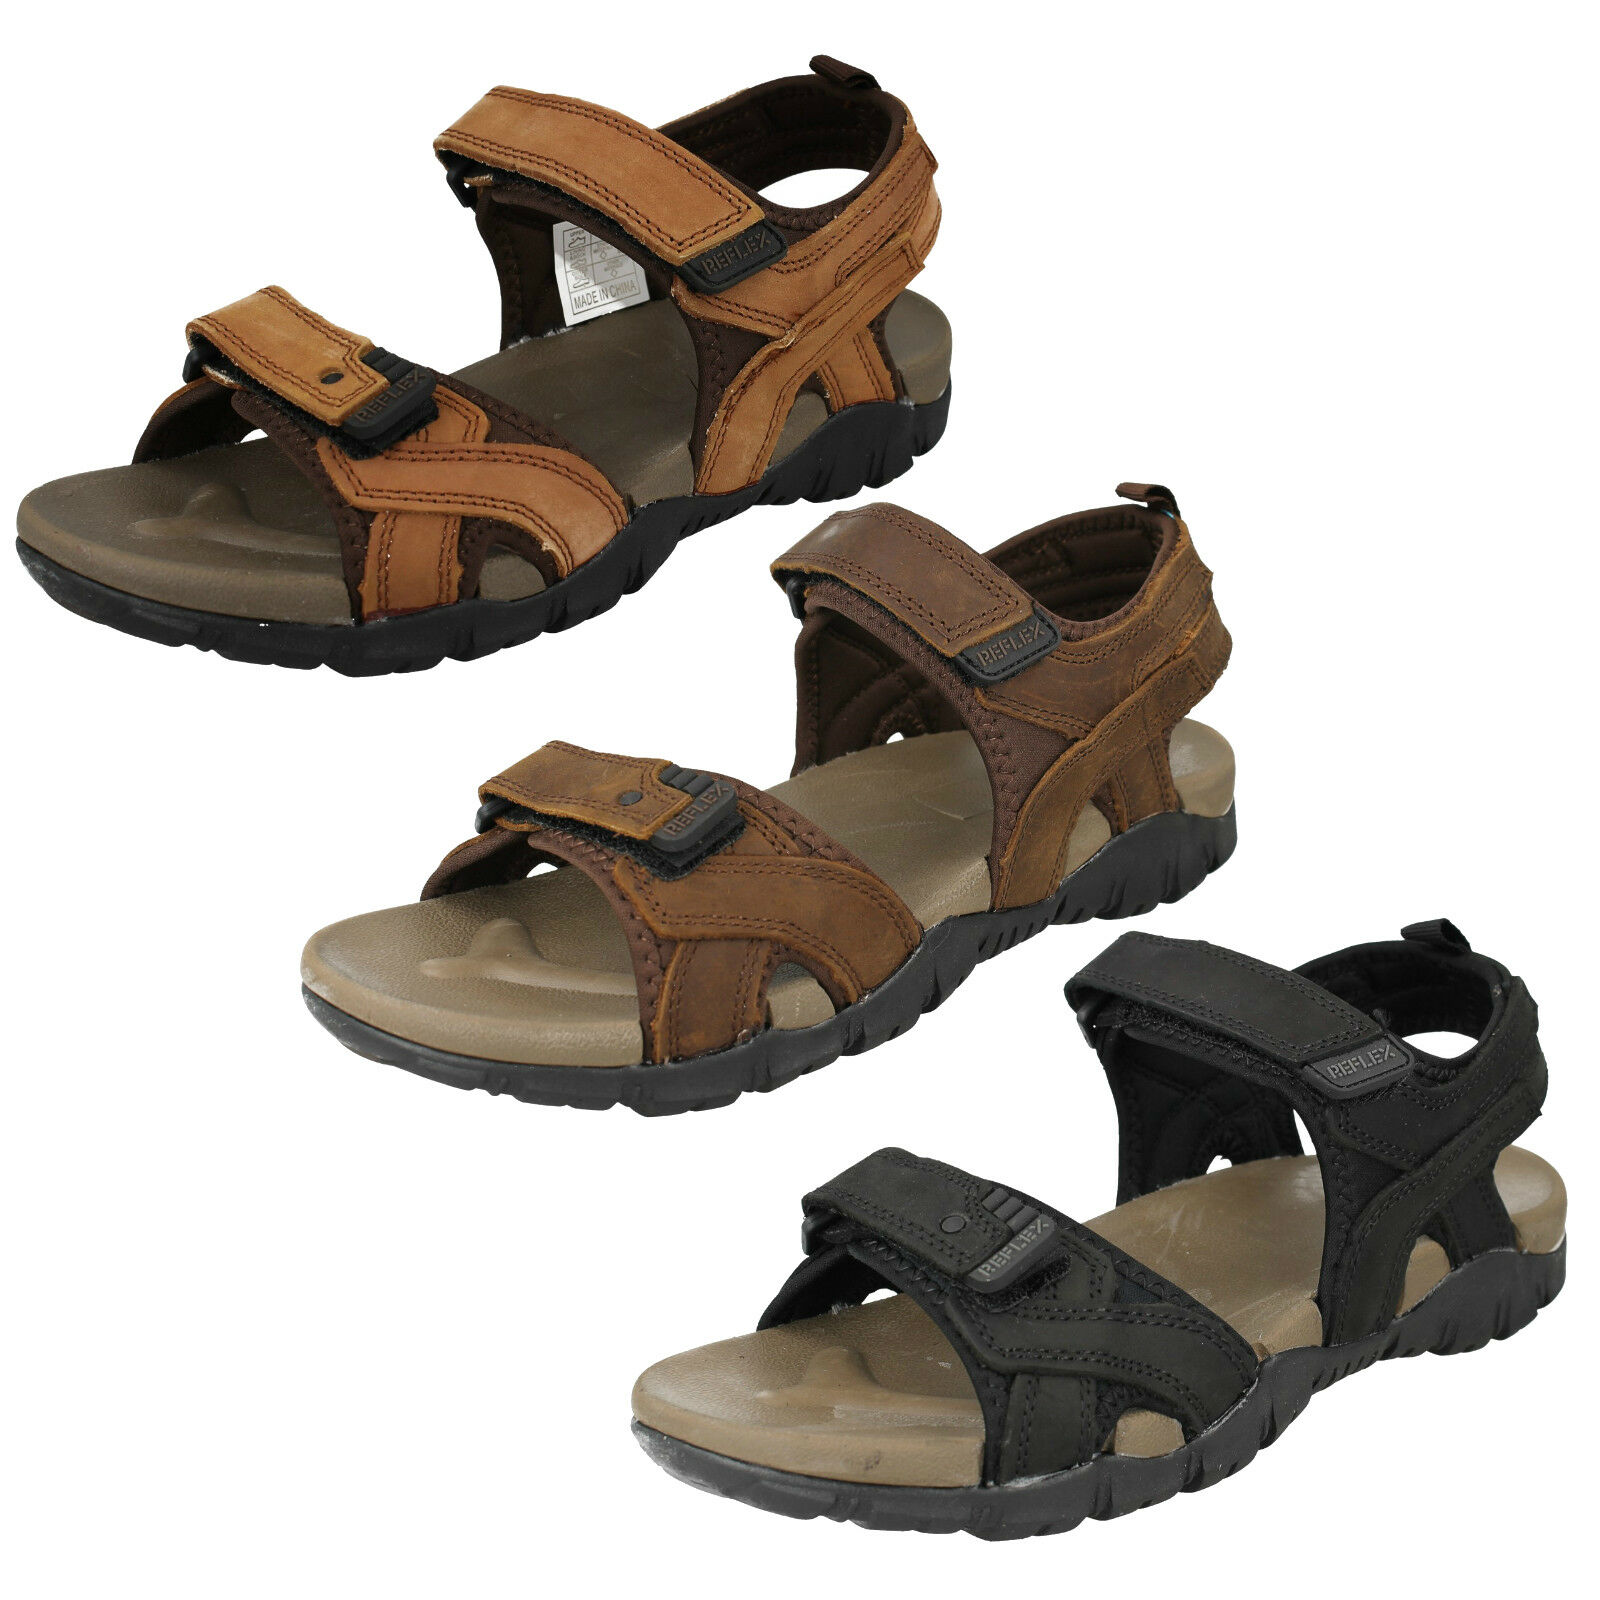 MENS REFLEX A0R052 RIPTAPE STRAP OPEN TOE CASUAL LEATHER BEACH SUMMER SANDALS